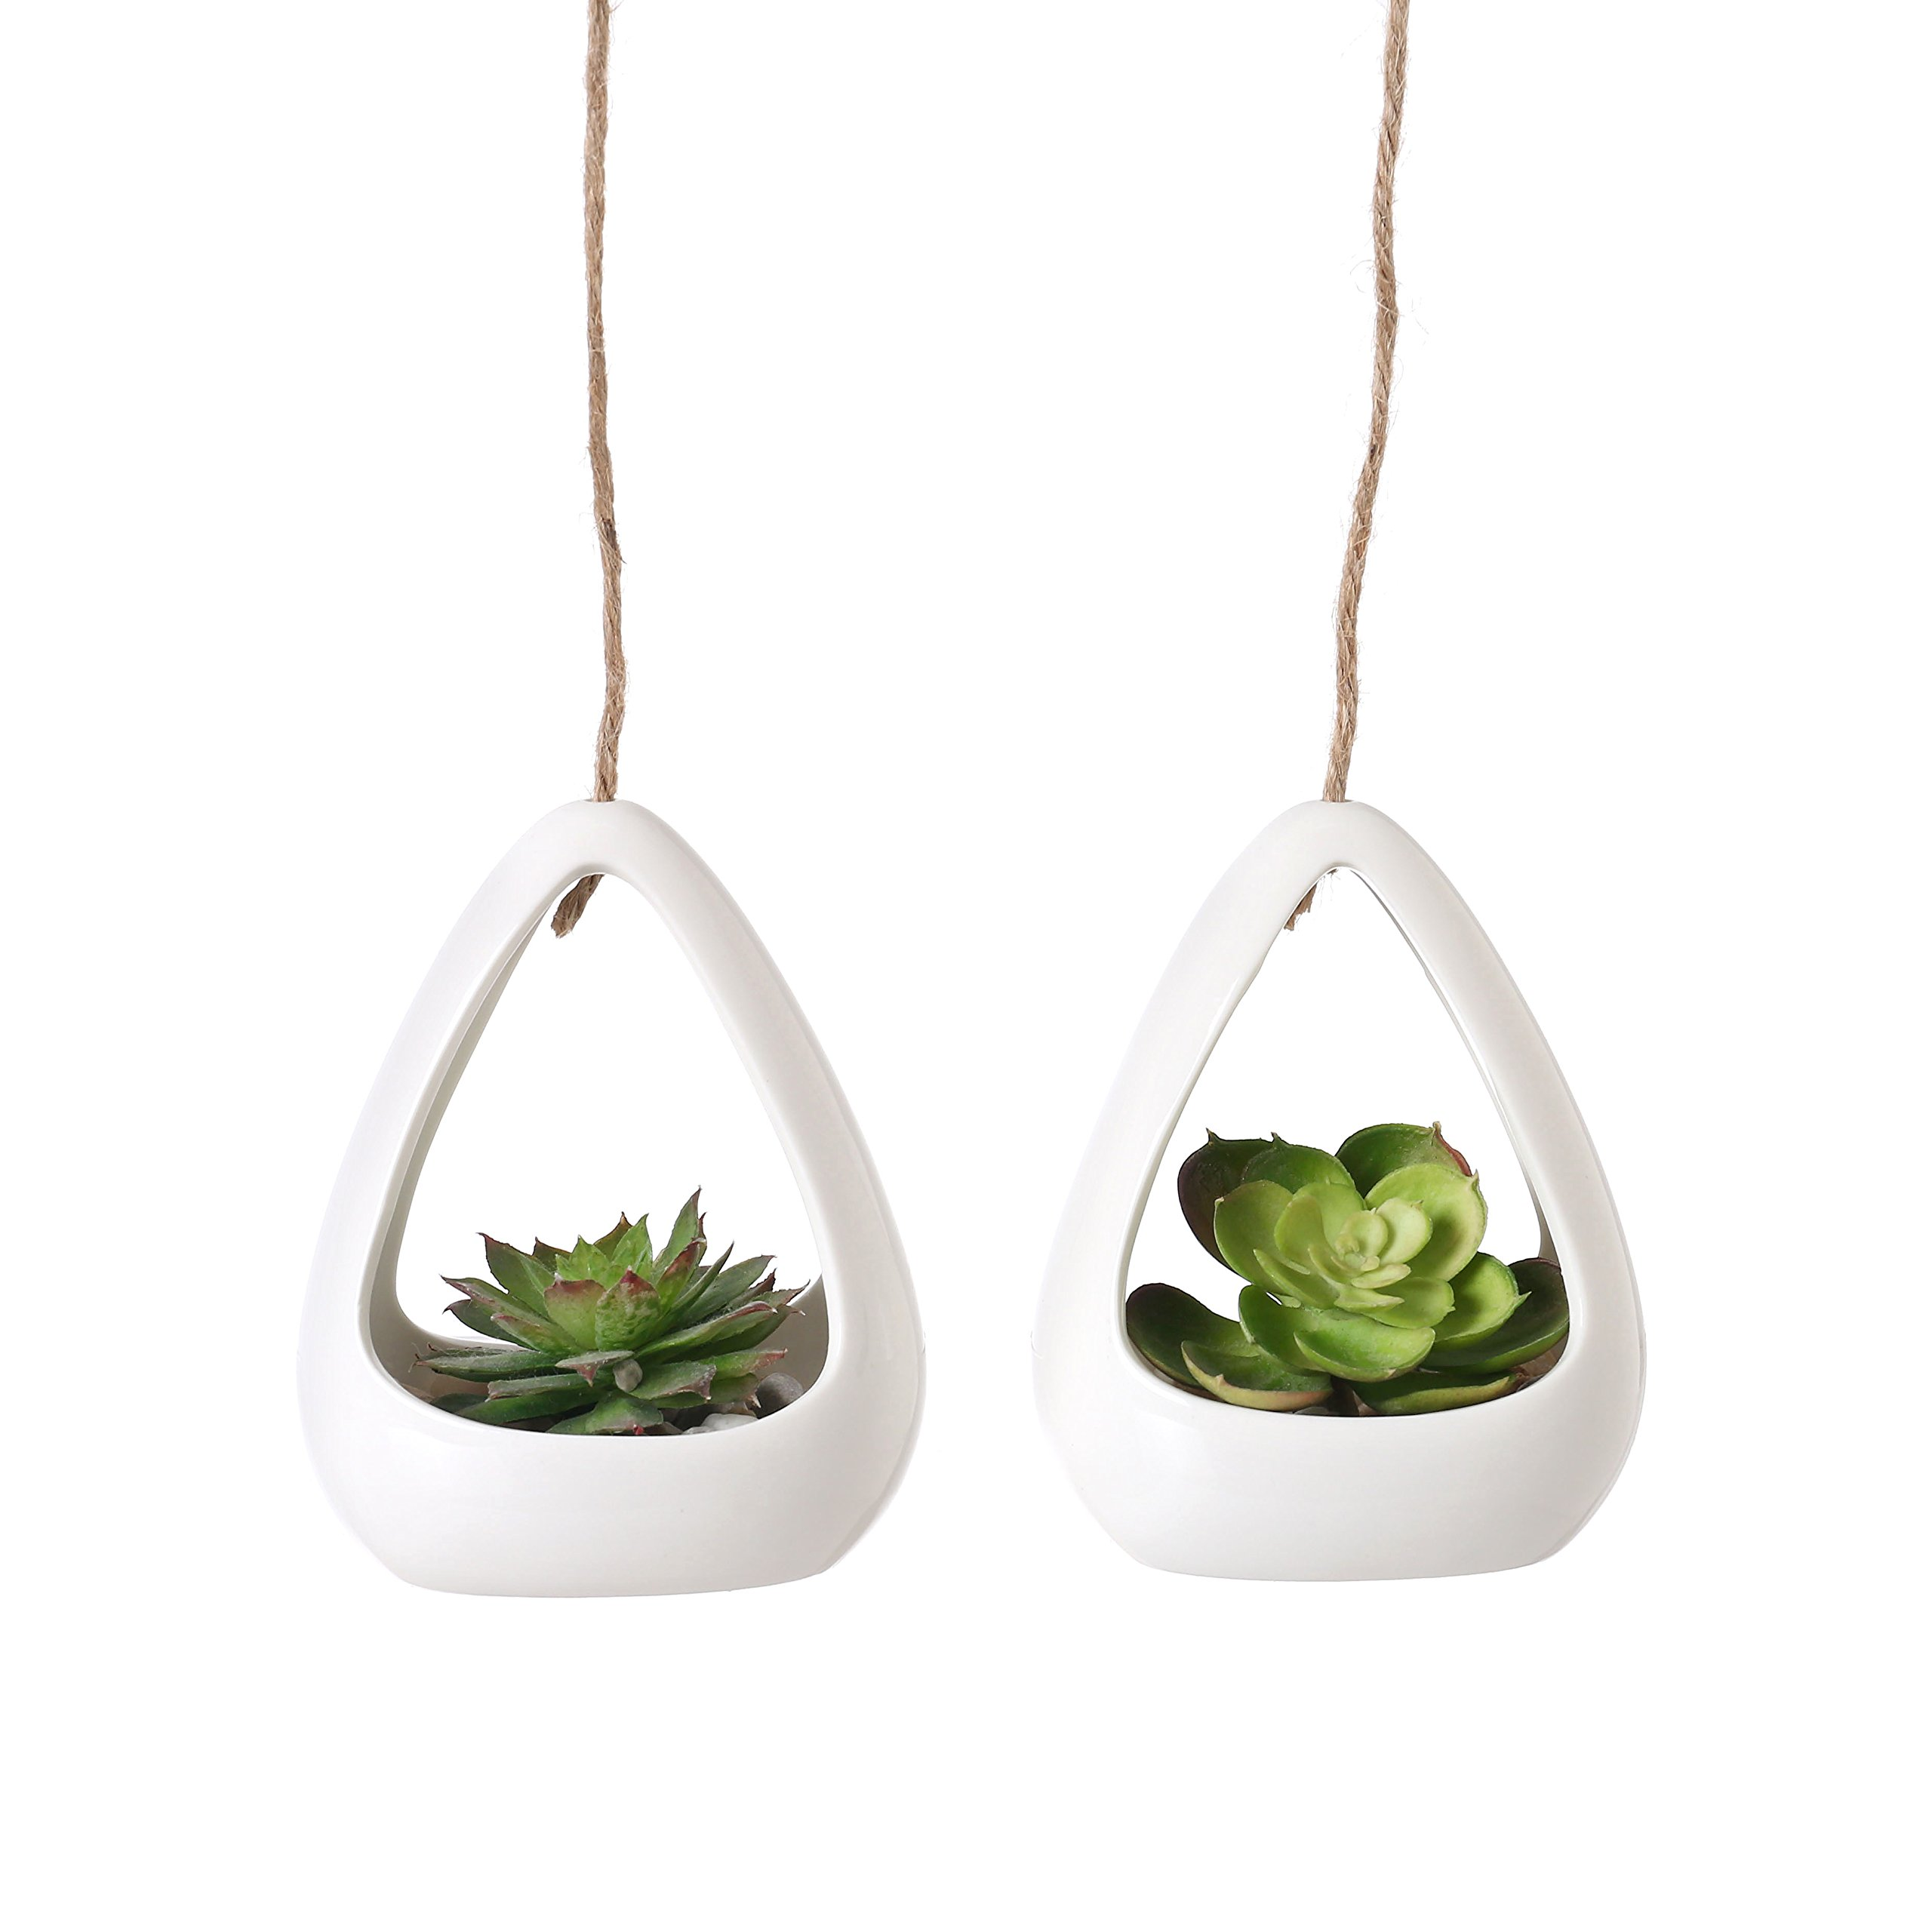 Modern White Ceramic Pod-Shaped Mini Hanging Planters with Twine Rope, Set of 2